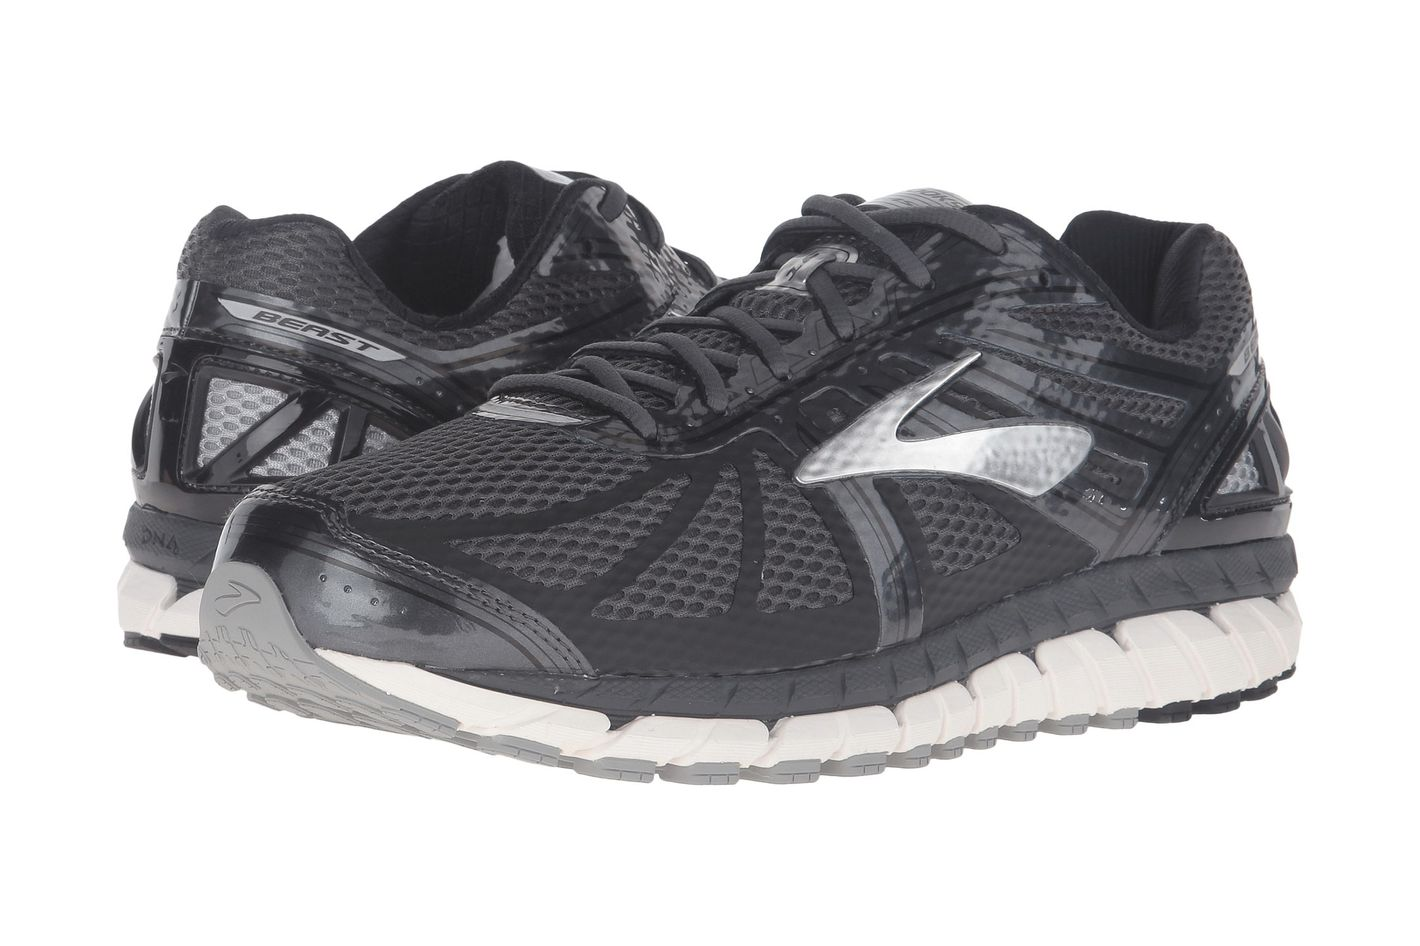 ... strength training at gym.  180 at Finish Line. Buy. Brooks Beast  16 Running  Shoes b72e813f3